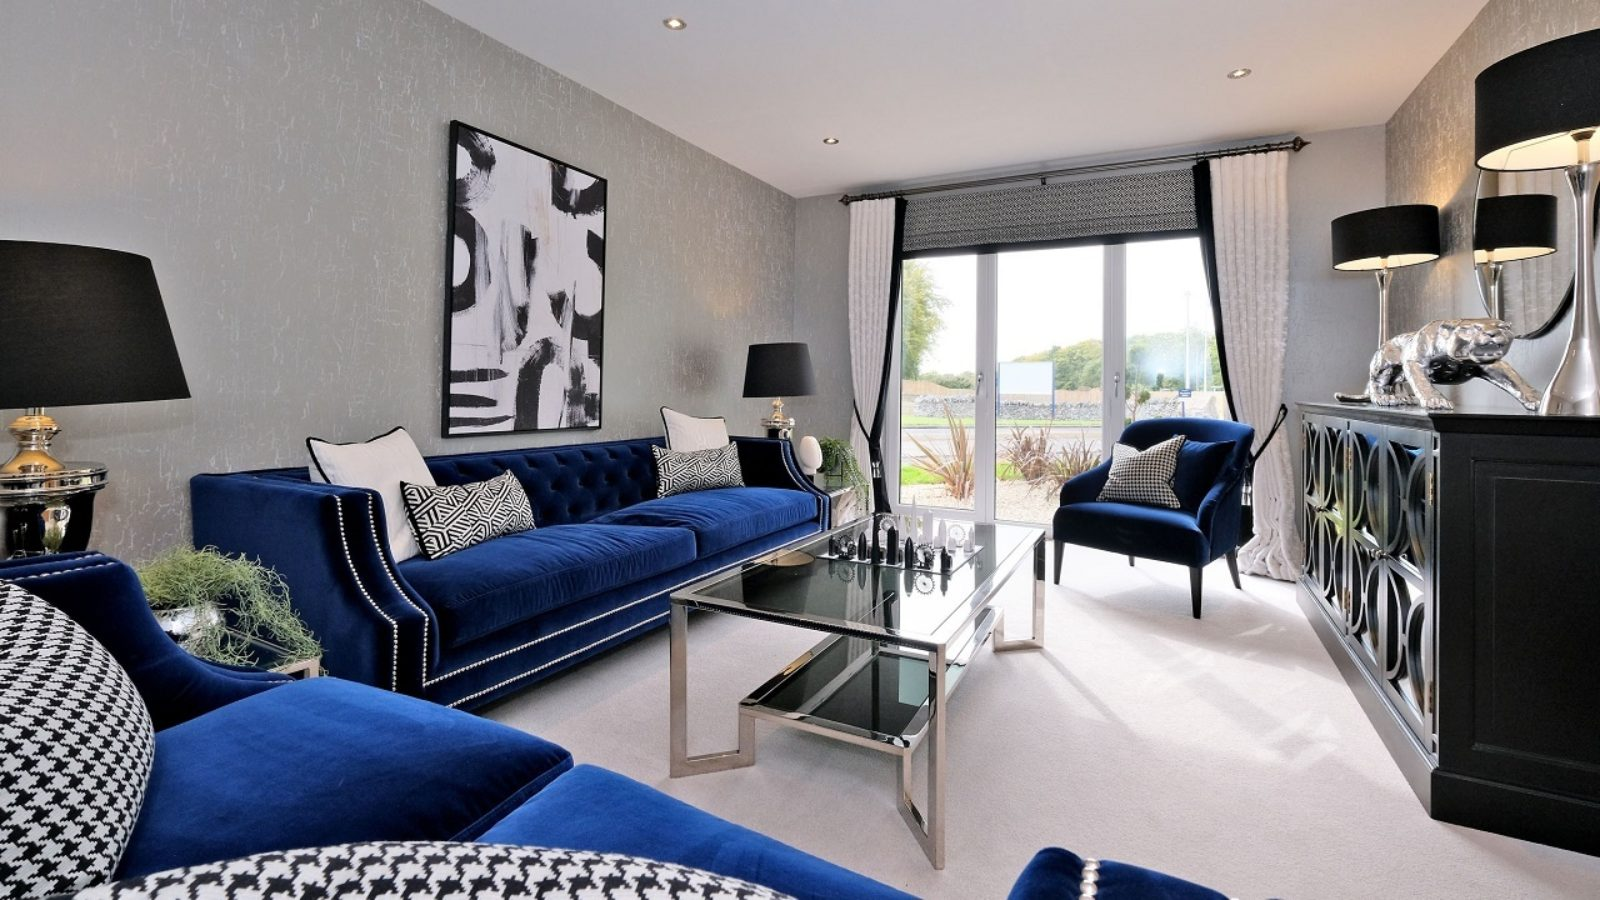 Show home launch at Bancon Homes' Aden Meadows development in Mintlaw